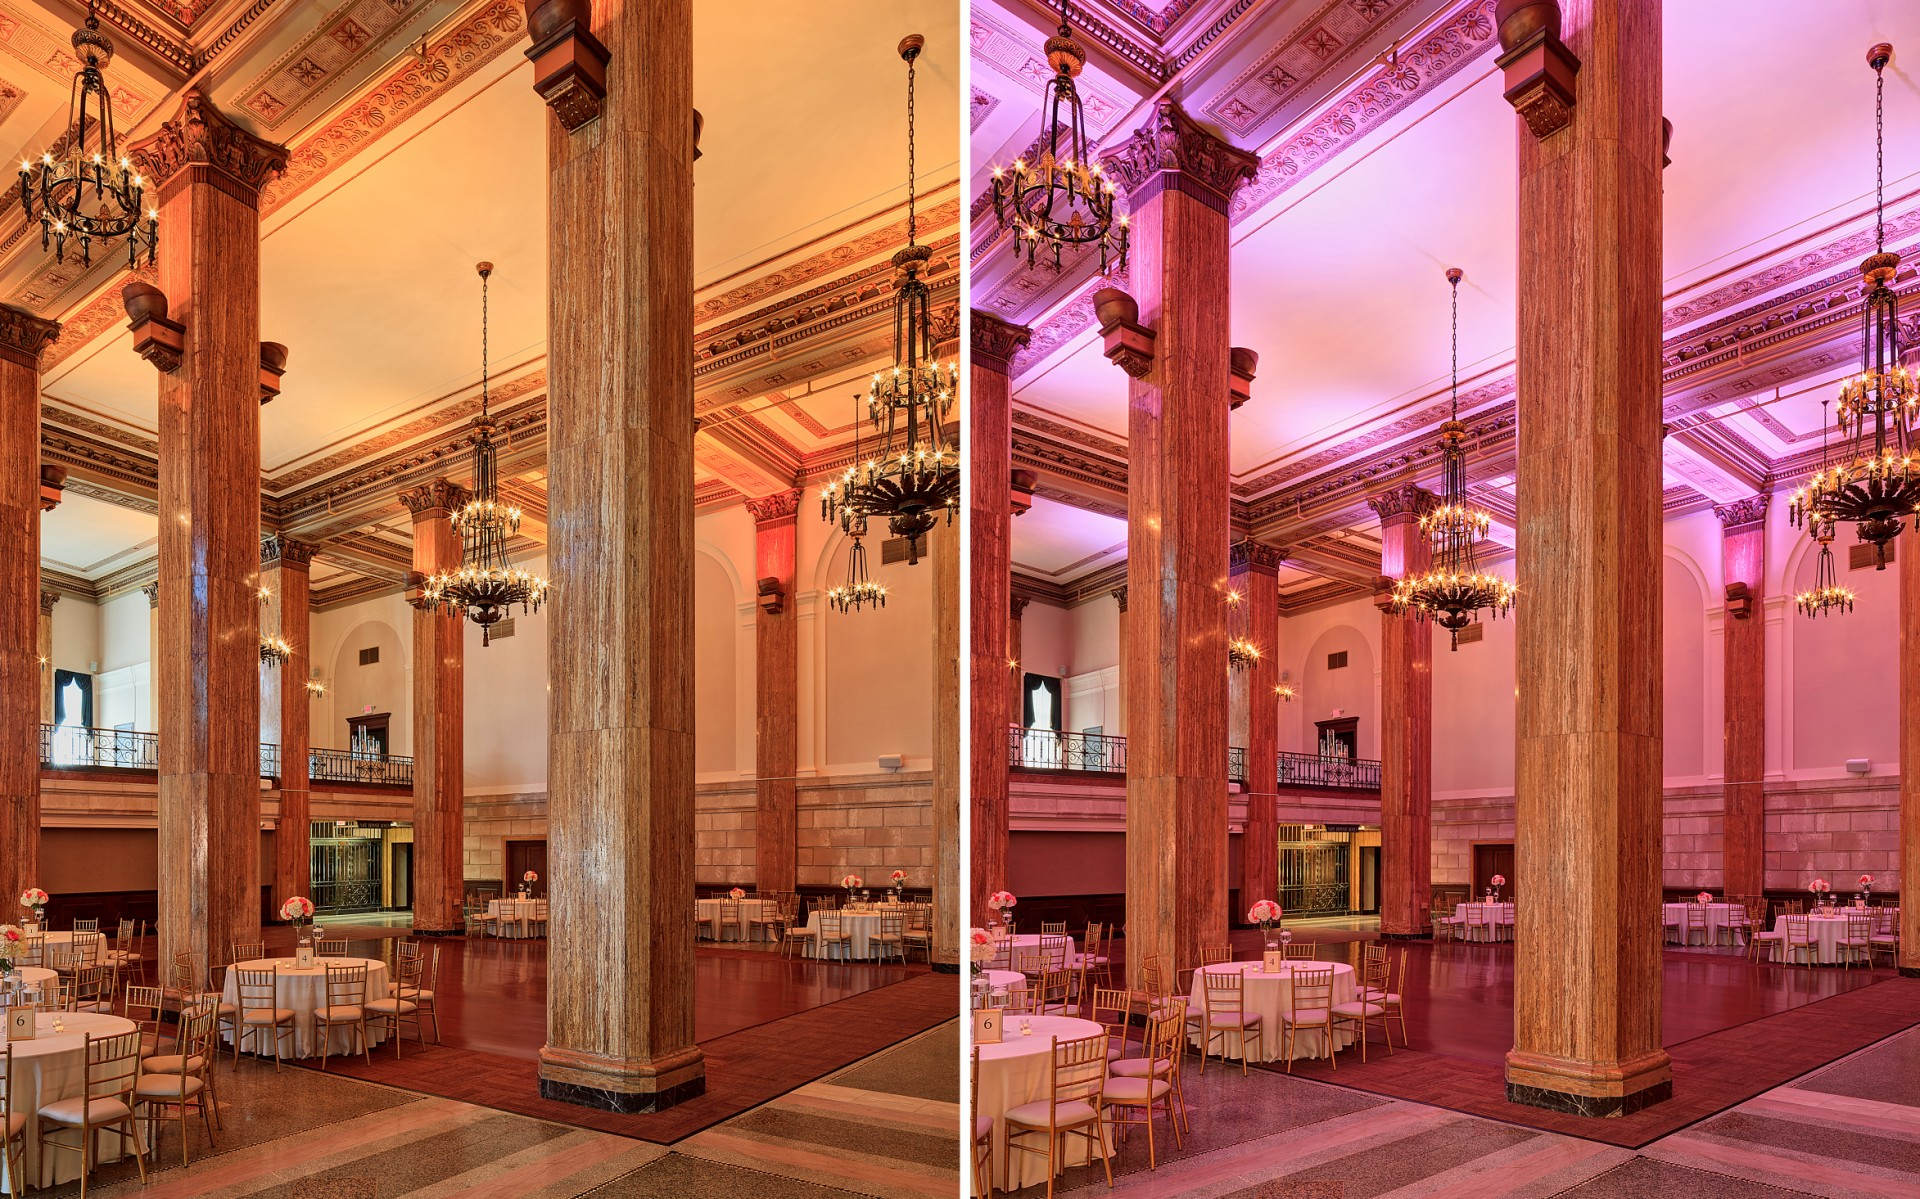 The end result reveals the space's original grandeur, reduces costs and boosts flexibility – creating a banquet hall that is timeless and modern.